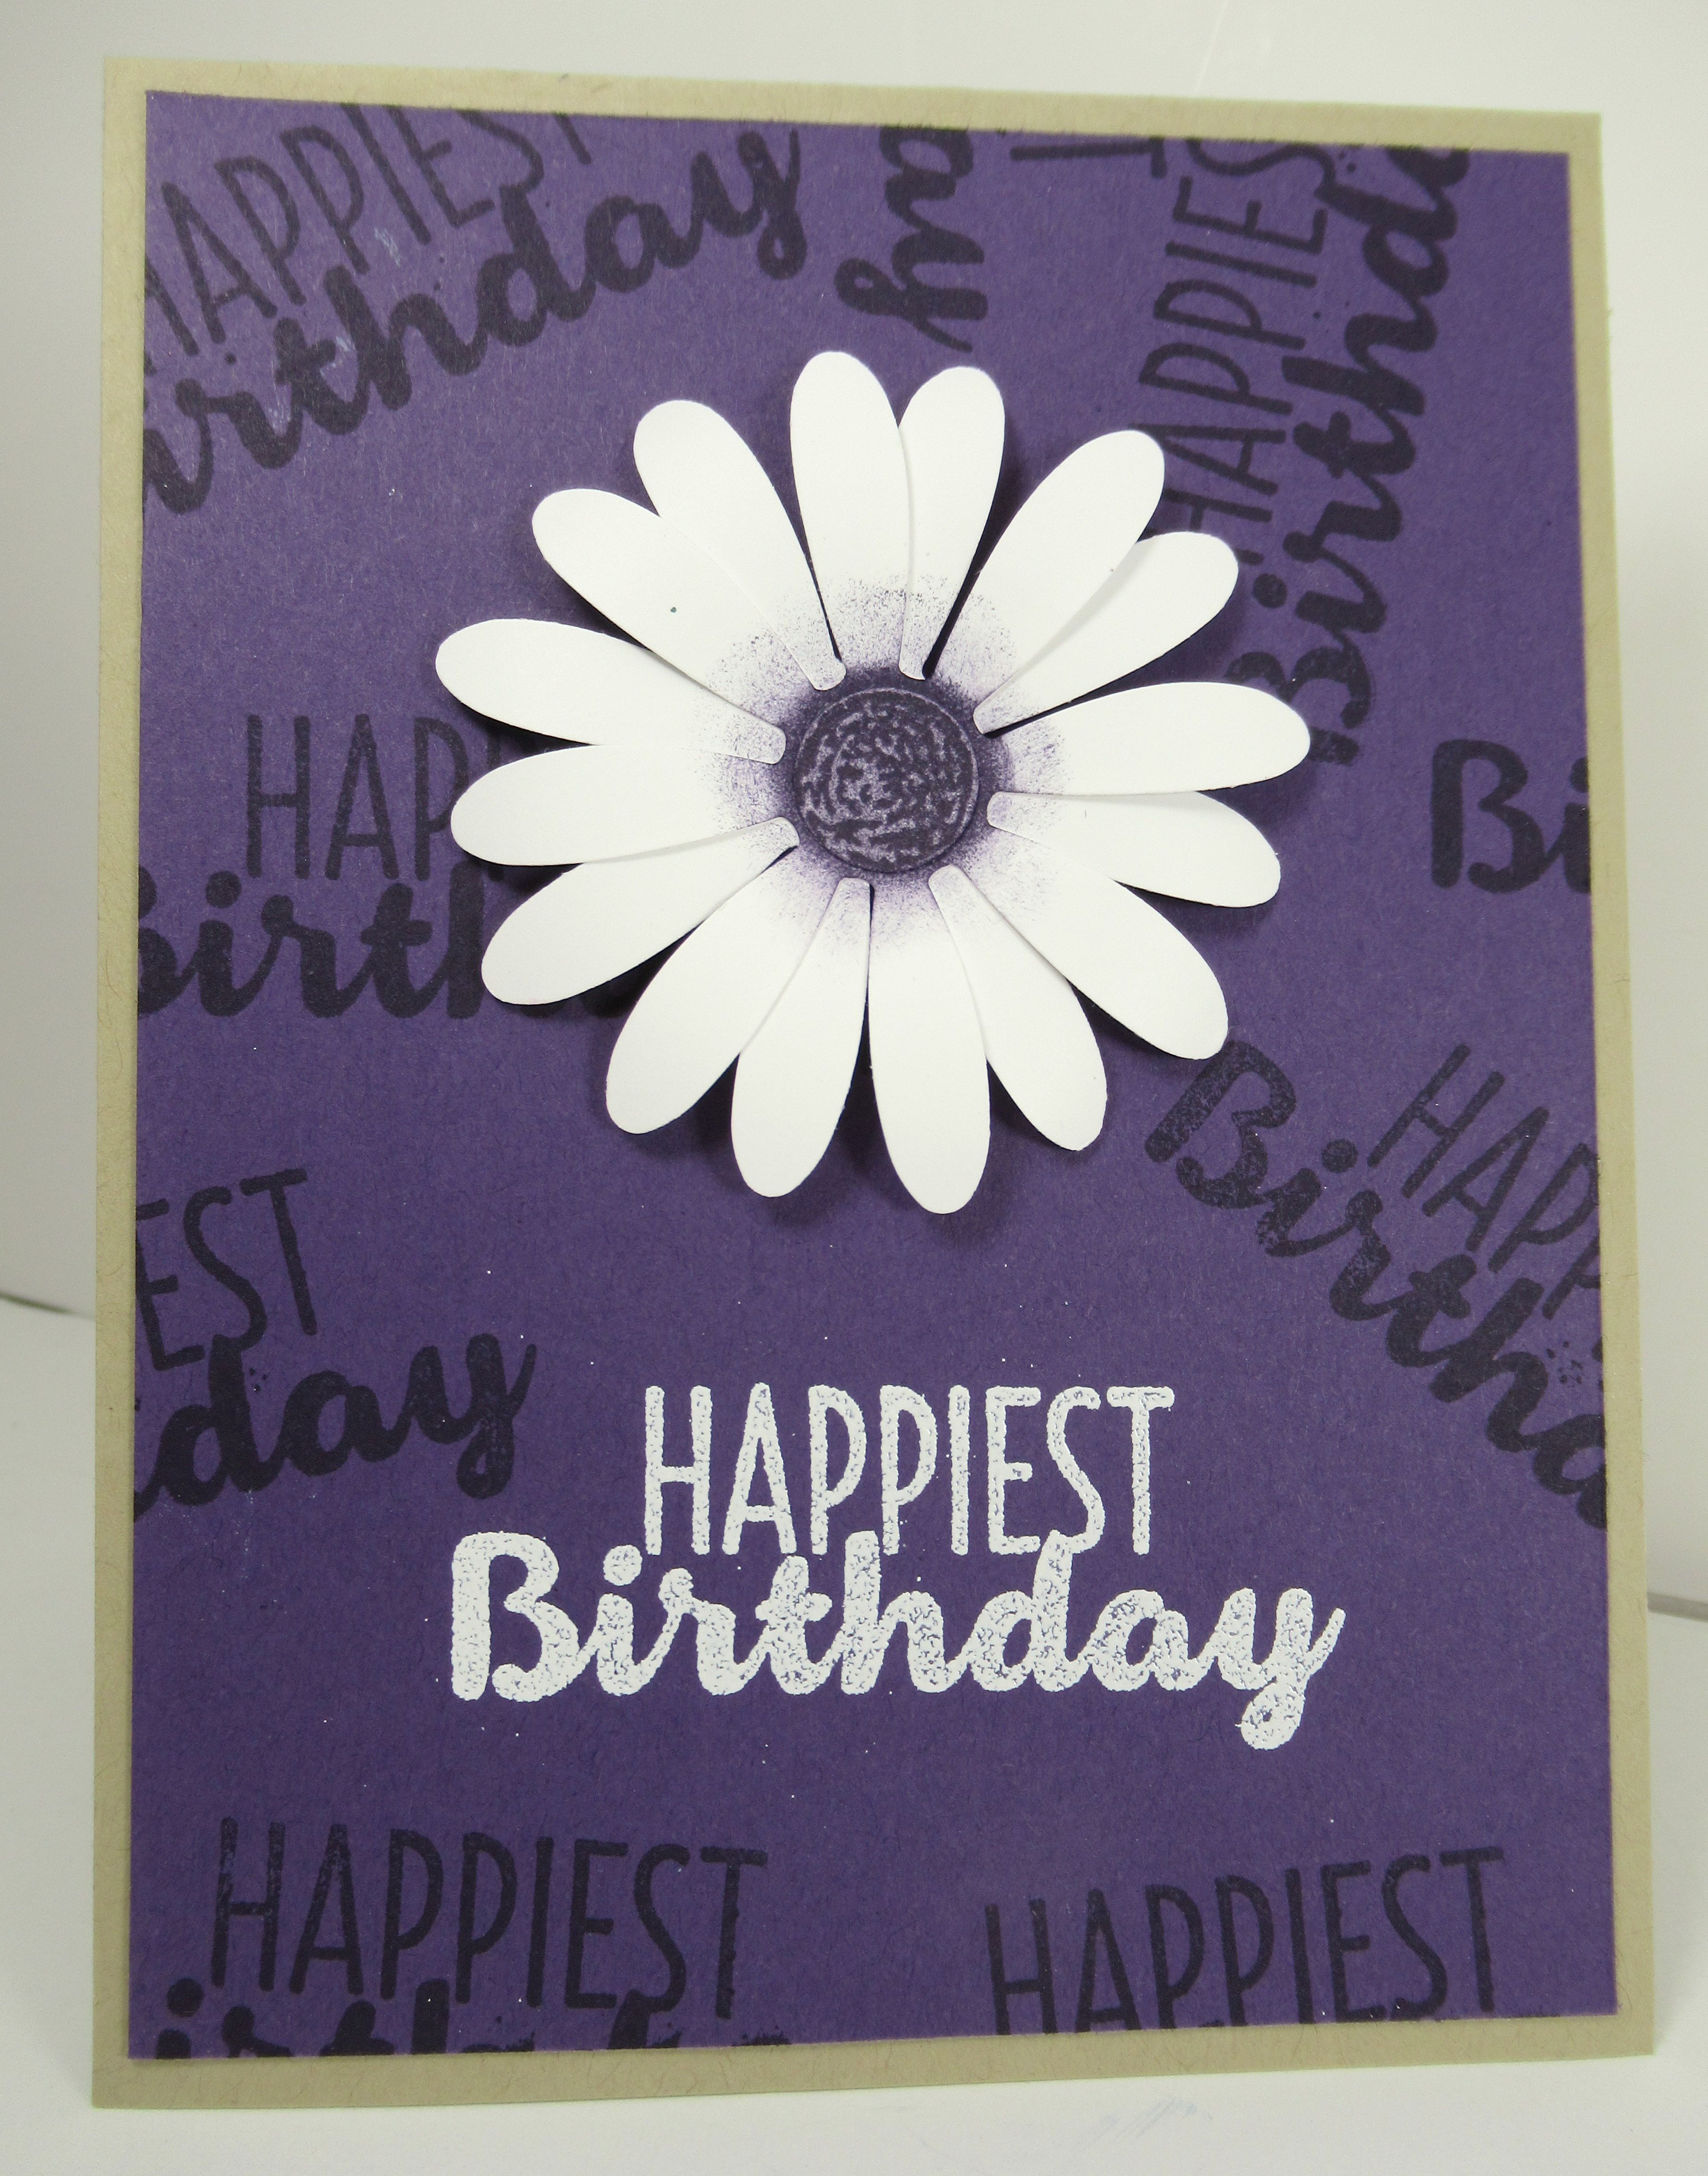 Daisy Delight in Eggplant Envy happy birthday card for a friend